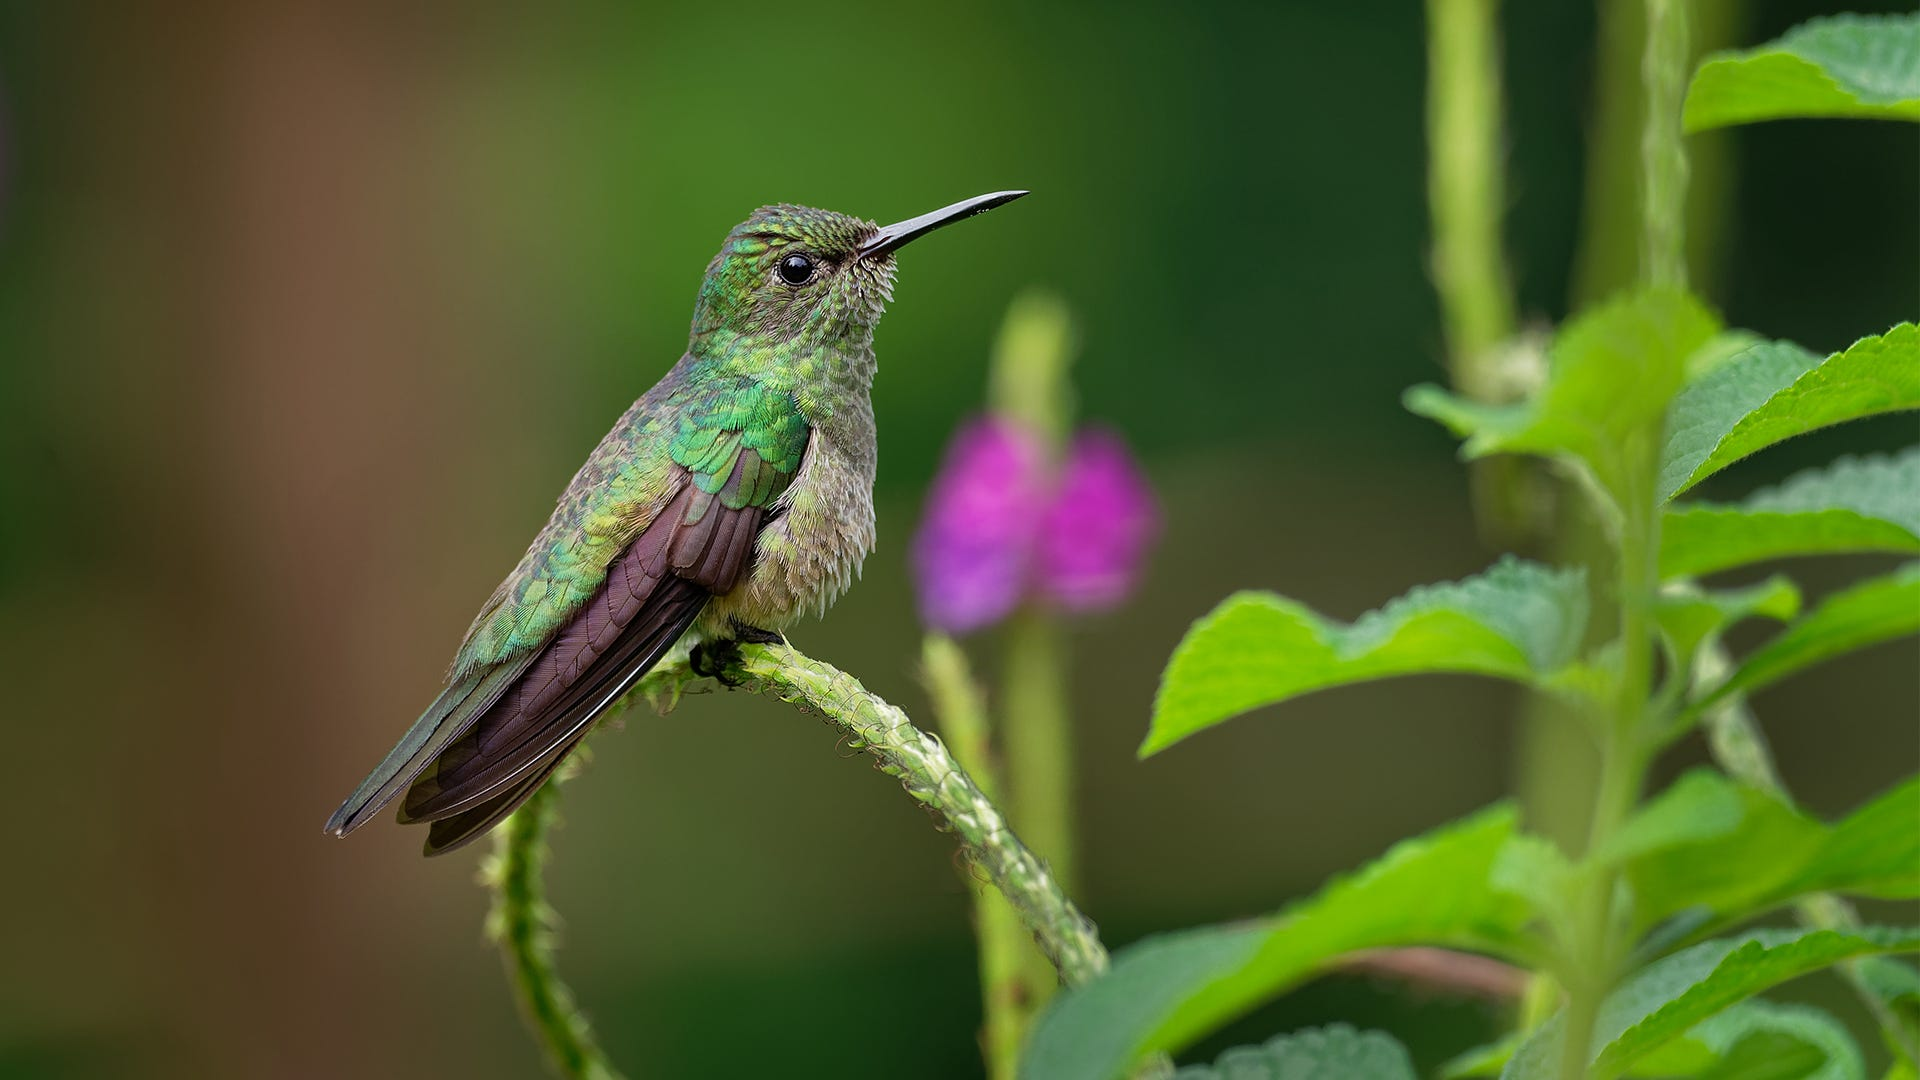 Anatomy Of A Hummingbird: What Makes Up These Tiny Birds?